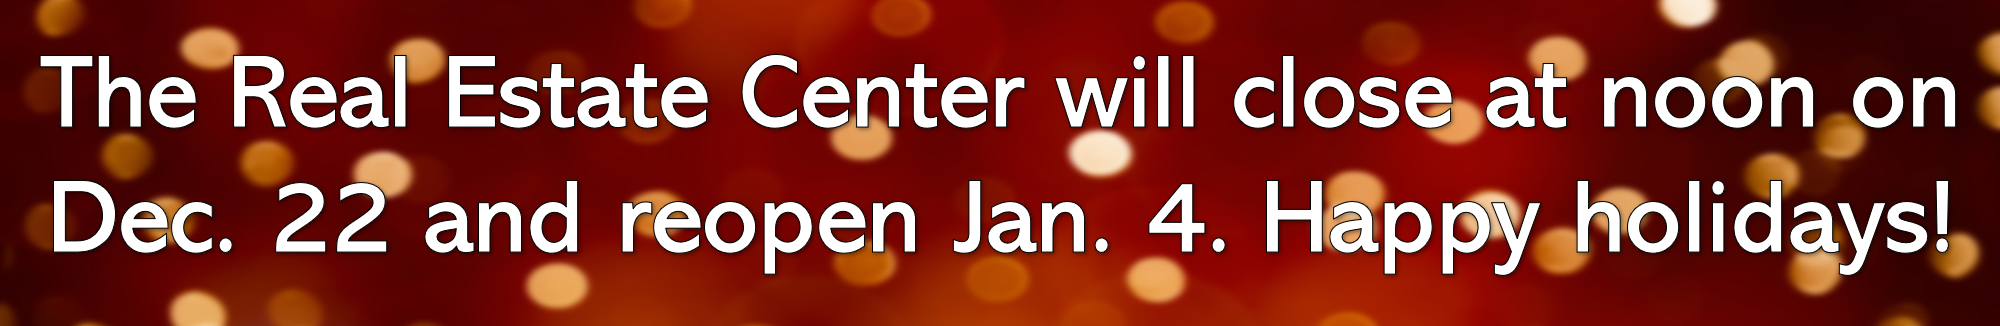 The Real Estate Center will close at noon on Dec. 22 and reopen Jan. 4. Happy holidays!